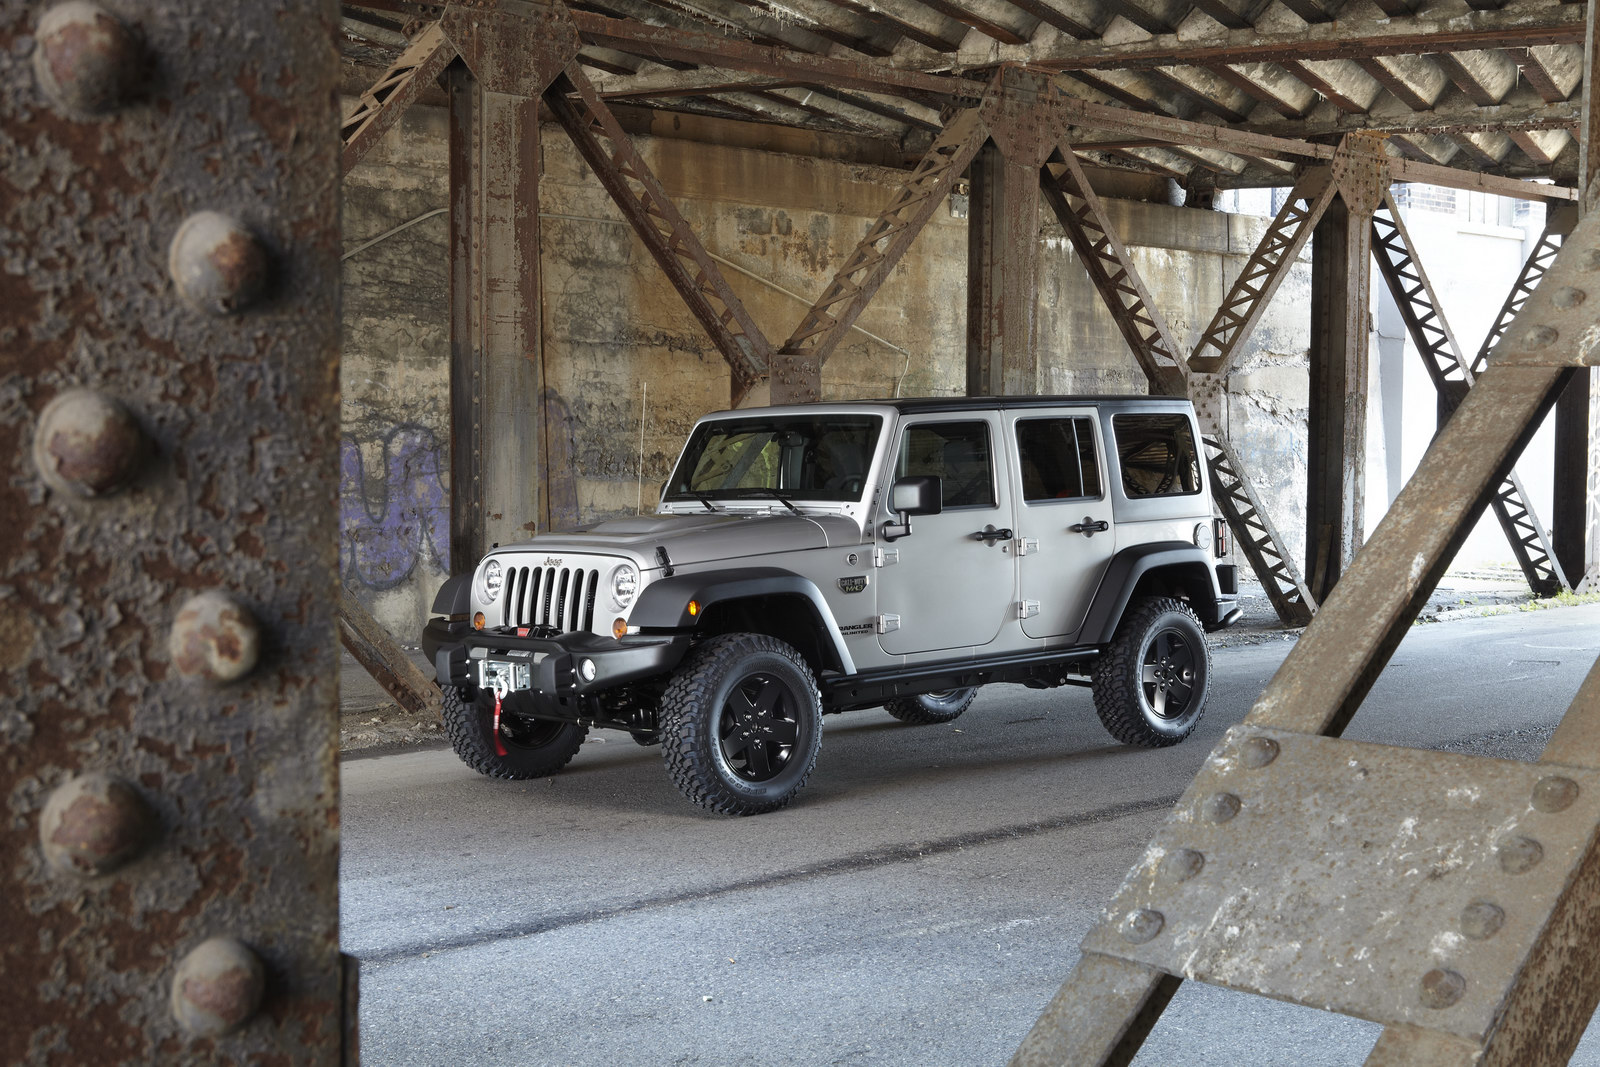 2011 Jeep Wrangler MW3 1 Special Edition 2012 Wrangler   Call of Duty: MW3